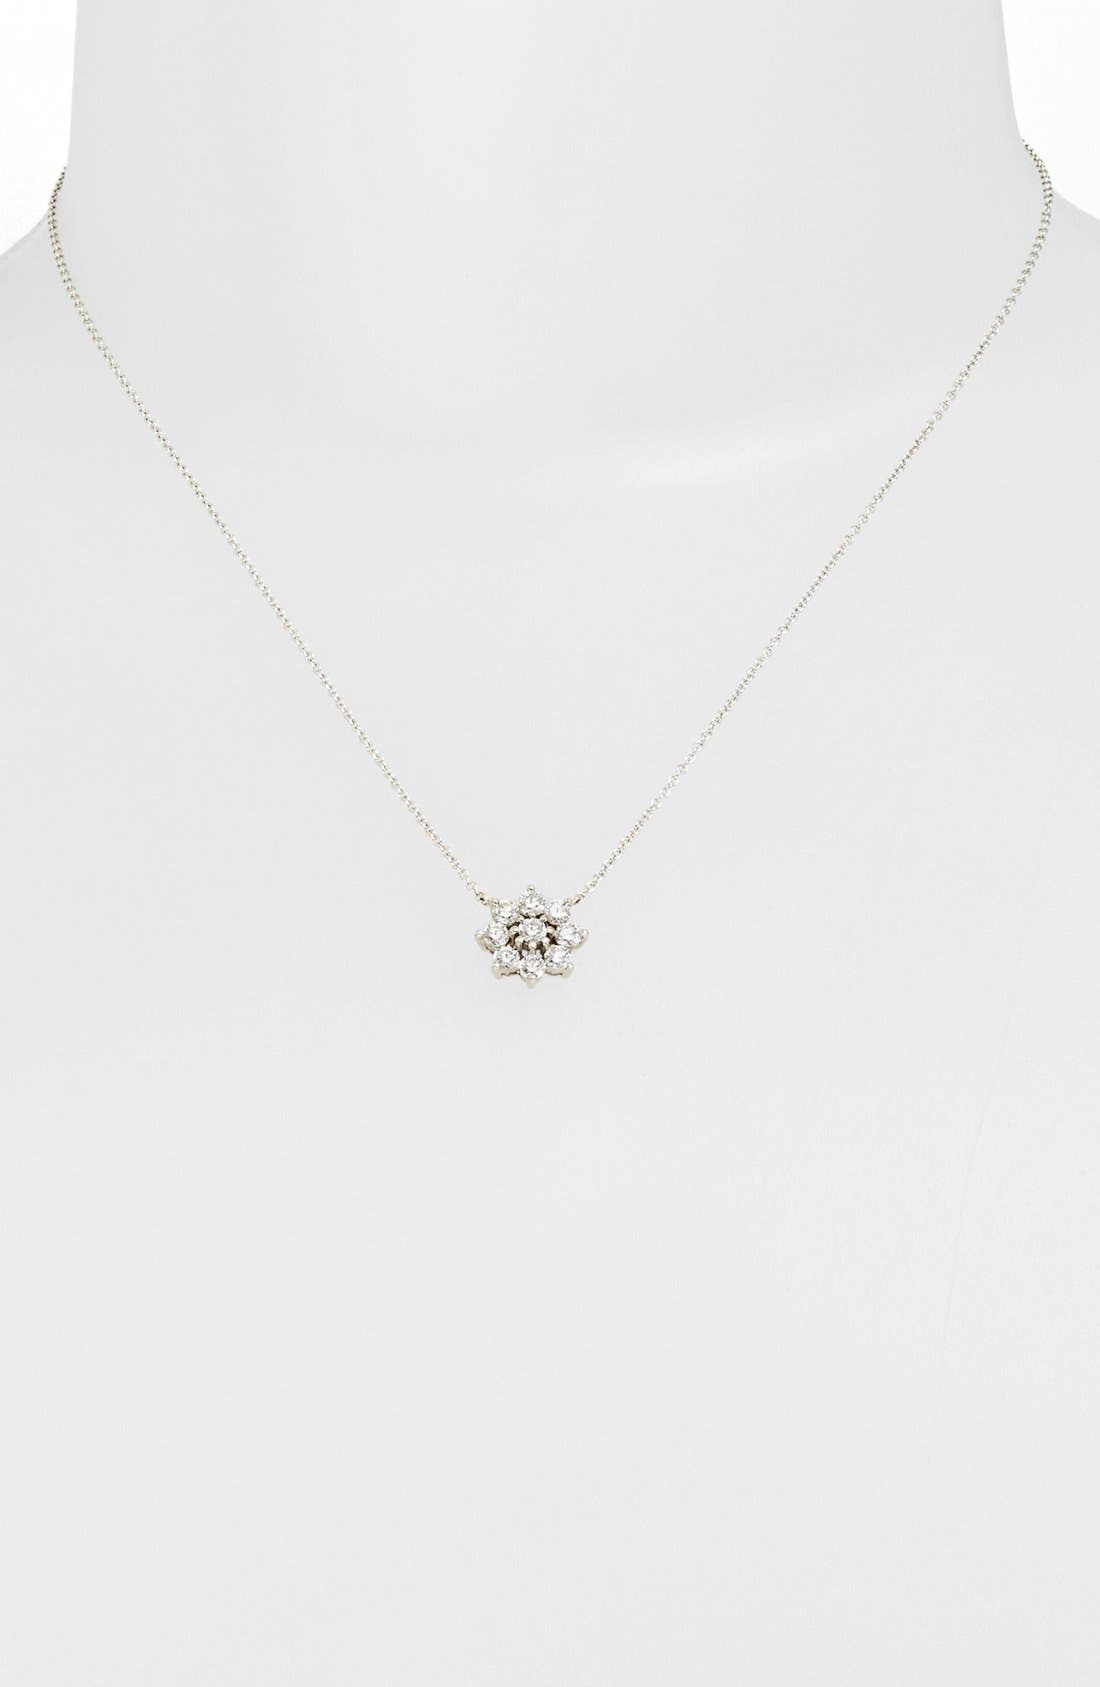 Alternate Image 1 Selected - Kwiat 'Blooms' Diamond Pendant Necklace